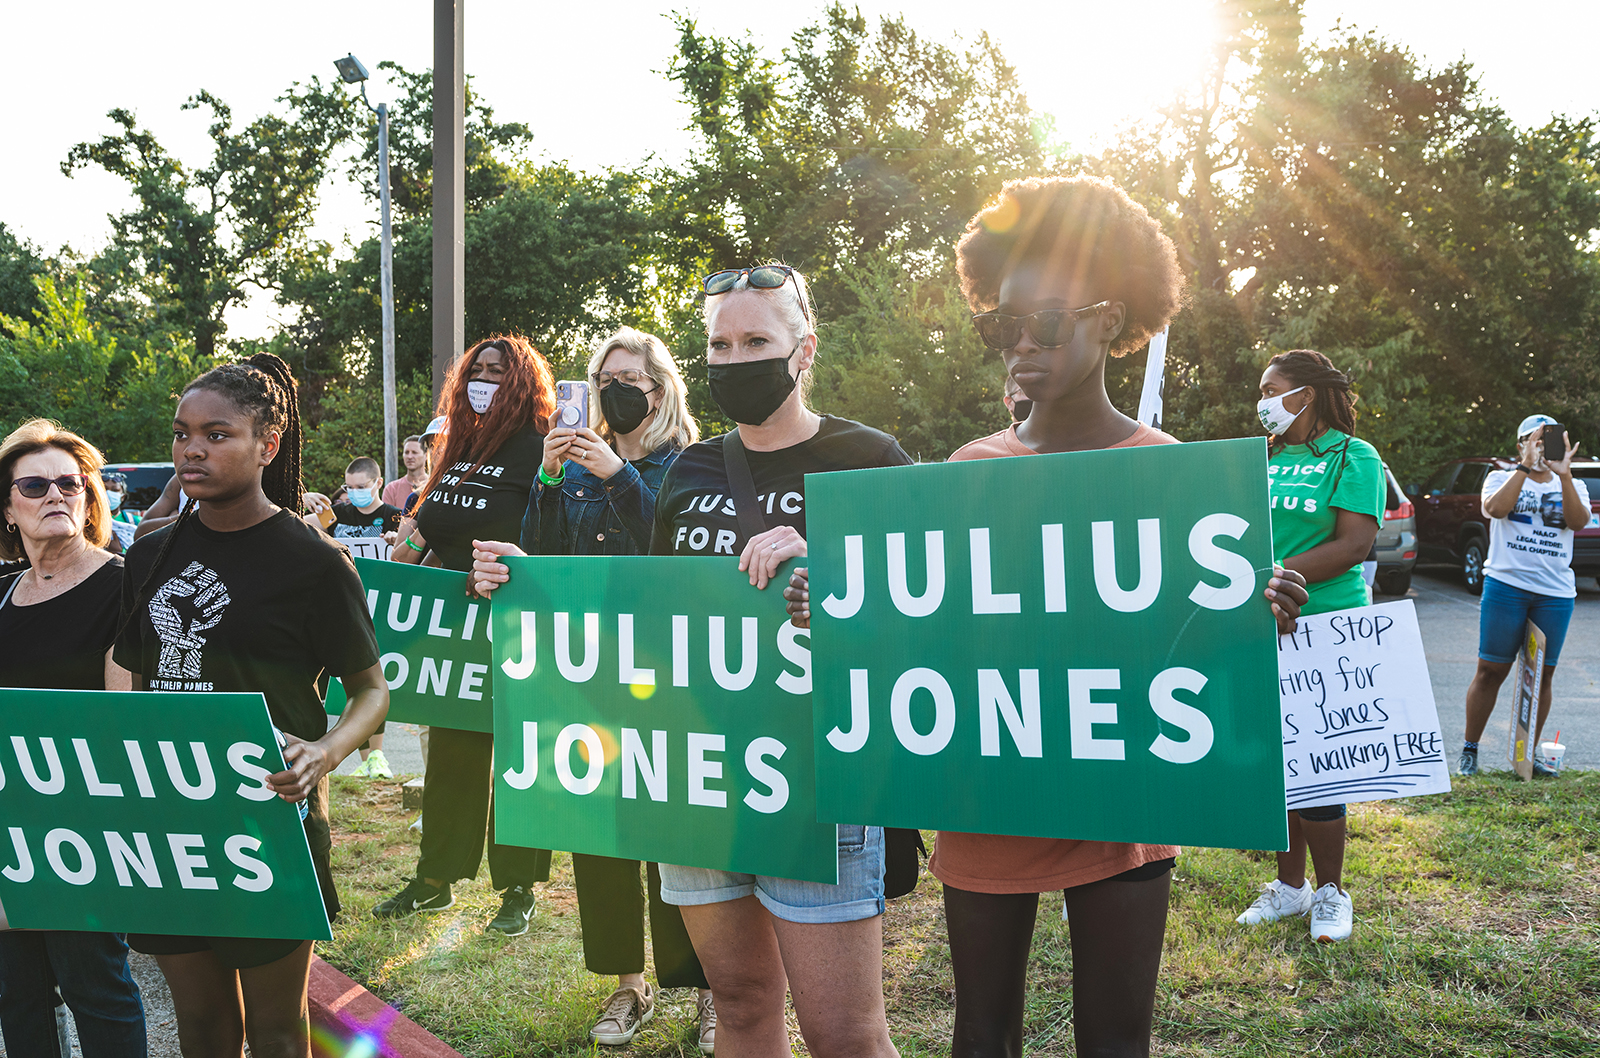 People attend a Justice for Julius Jones Commutation Hearing Rally in Oklahoma City, Oklahoma, Monday, Sept. 13, 2021. Photo courtesy of Ben Ehrlich Creative